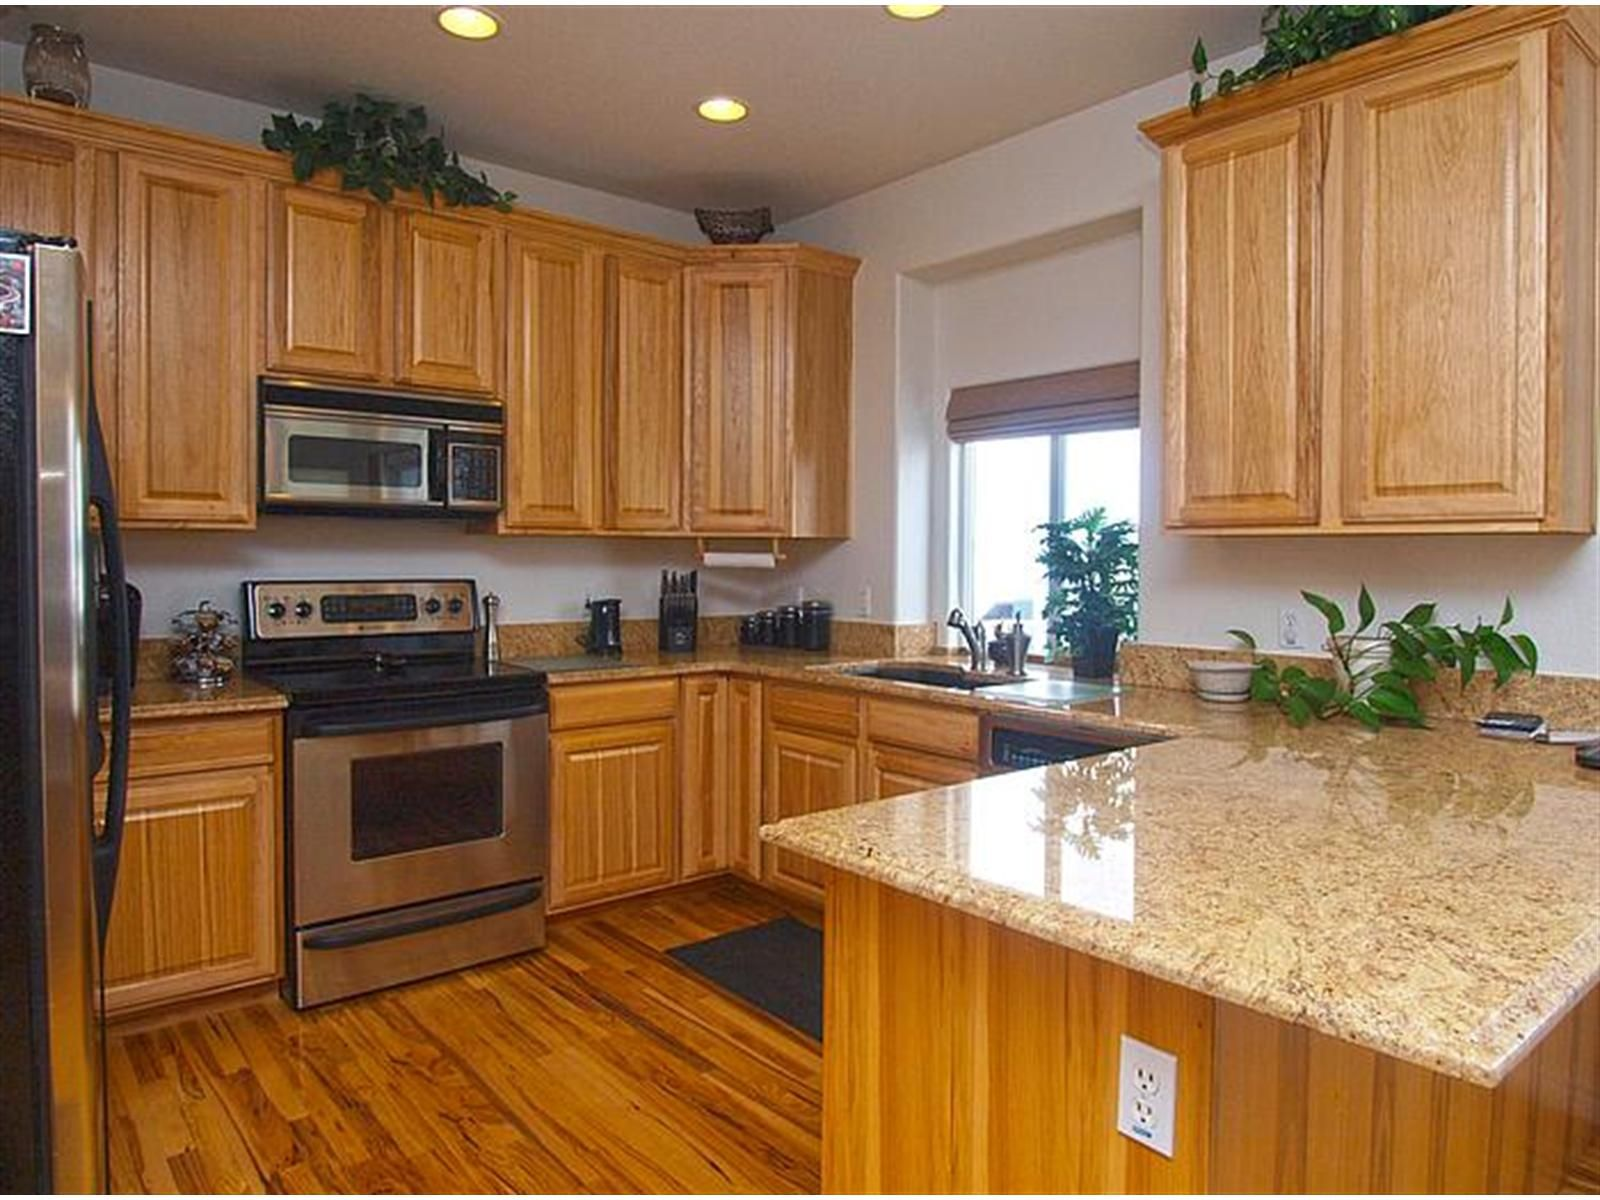 Denver Hickory Kitchen Cabinets Open Kitchen Plan With Hickory Cabinets And Hardwood